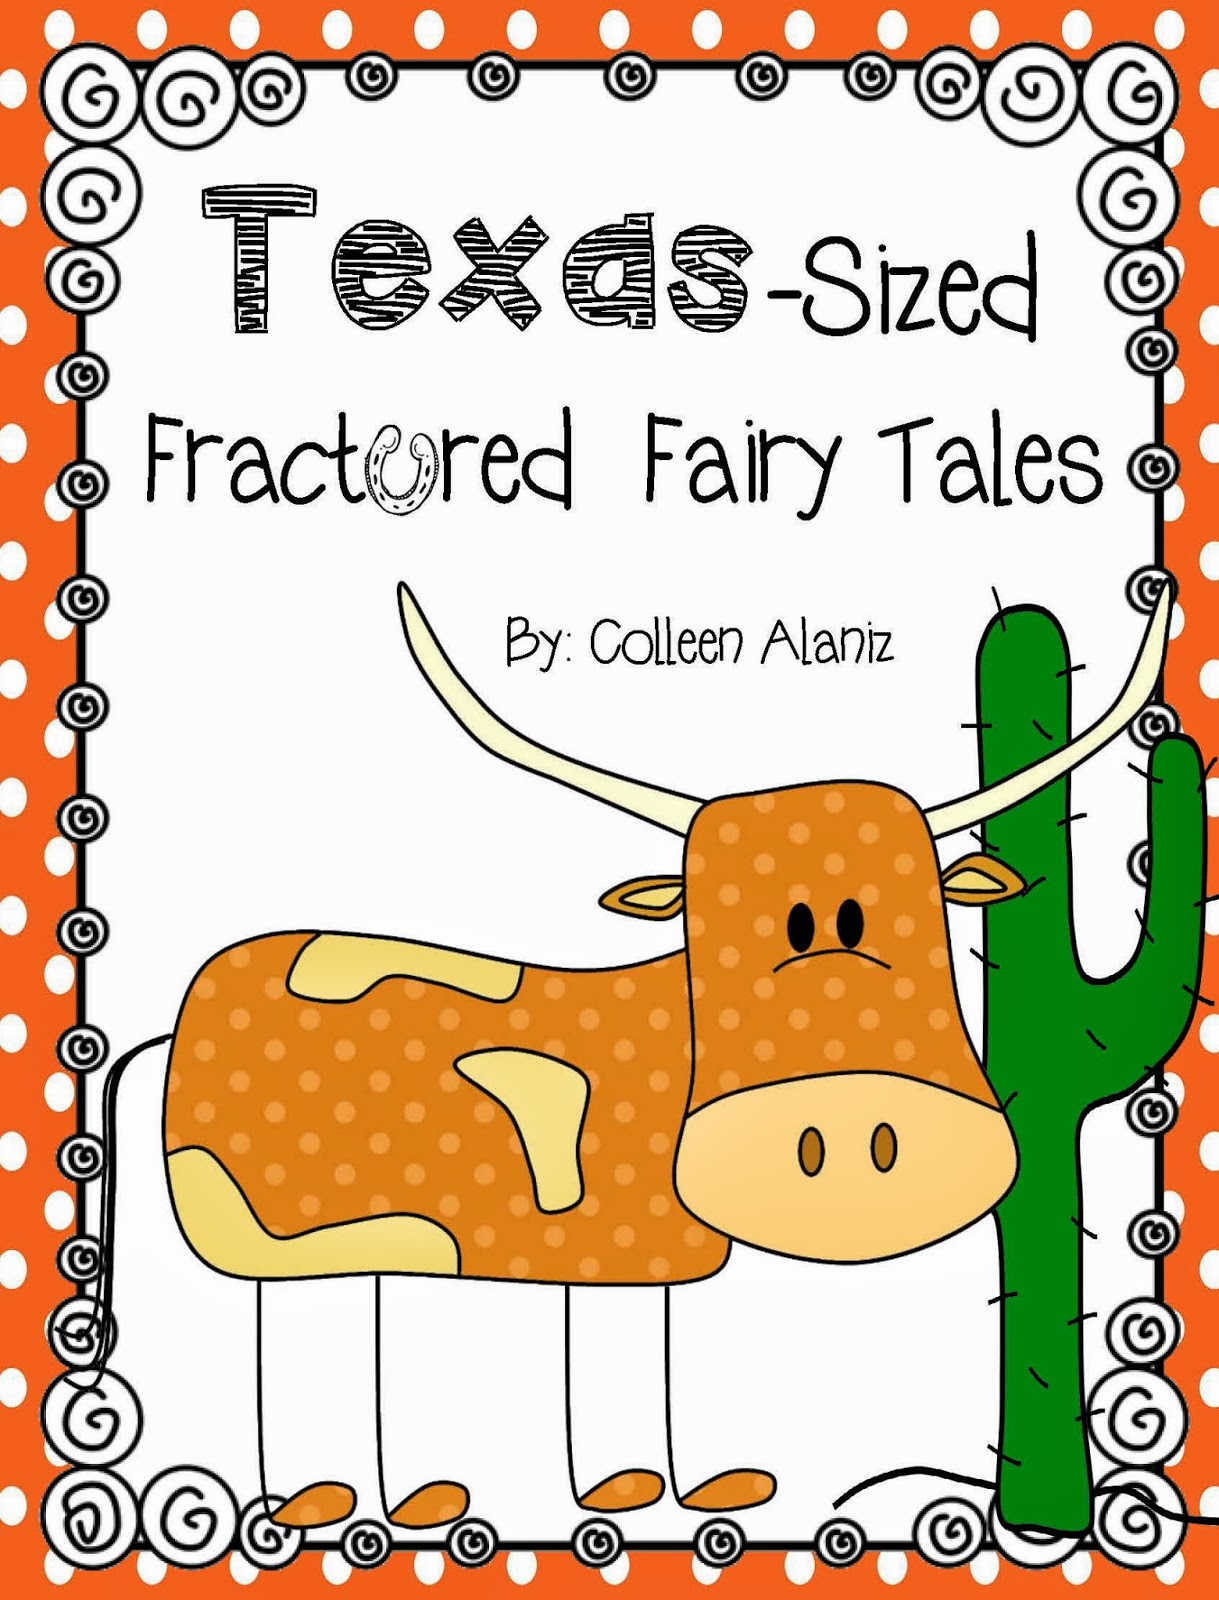 http://www.teacherspayteachers.com/Product/Texas-Sized-Fractured-Fairy-Tales-578822